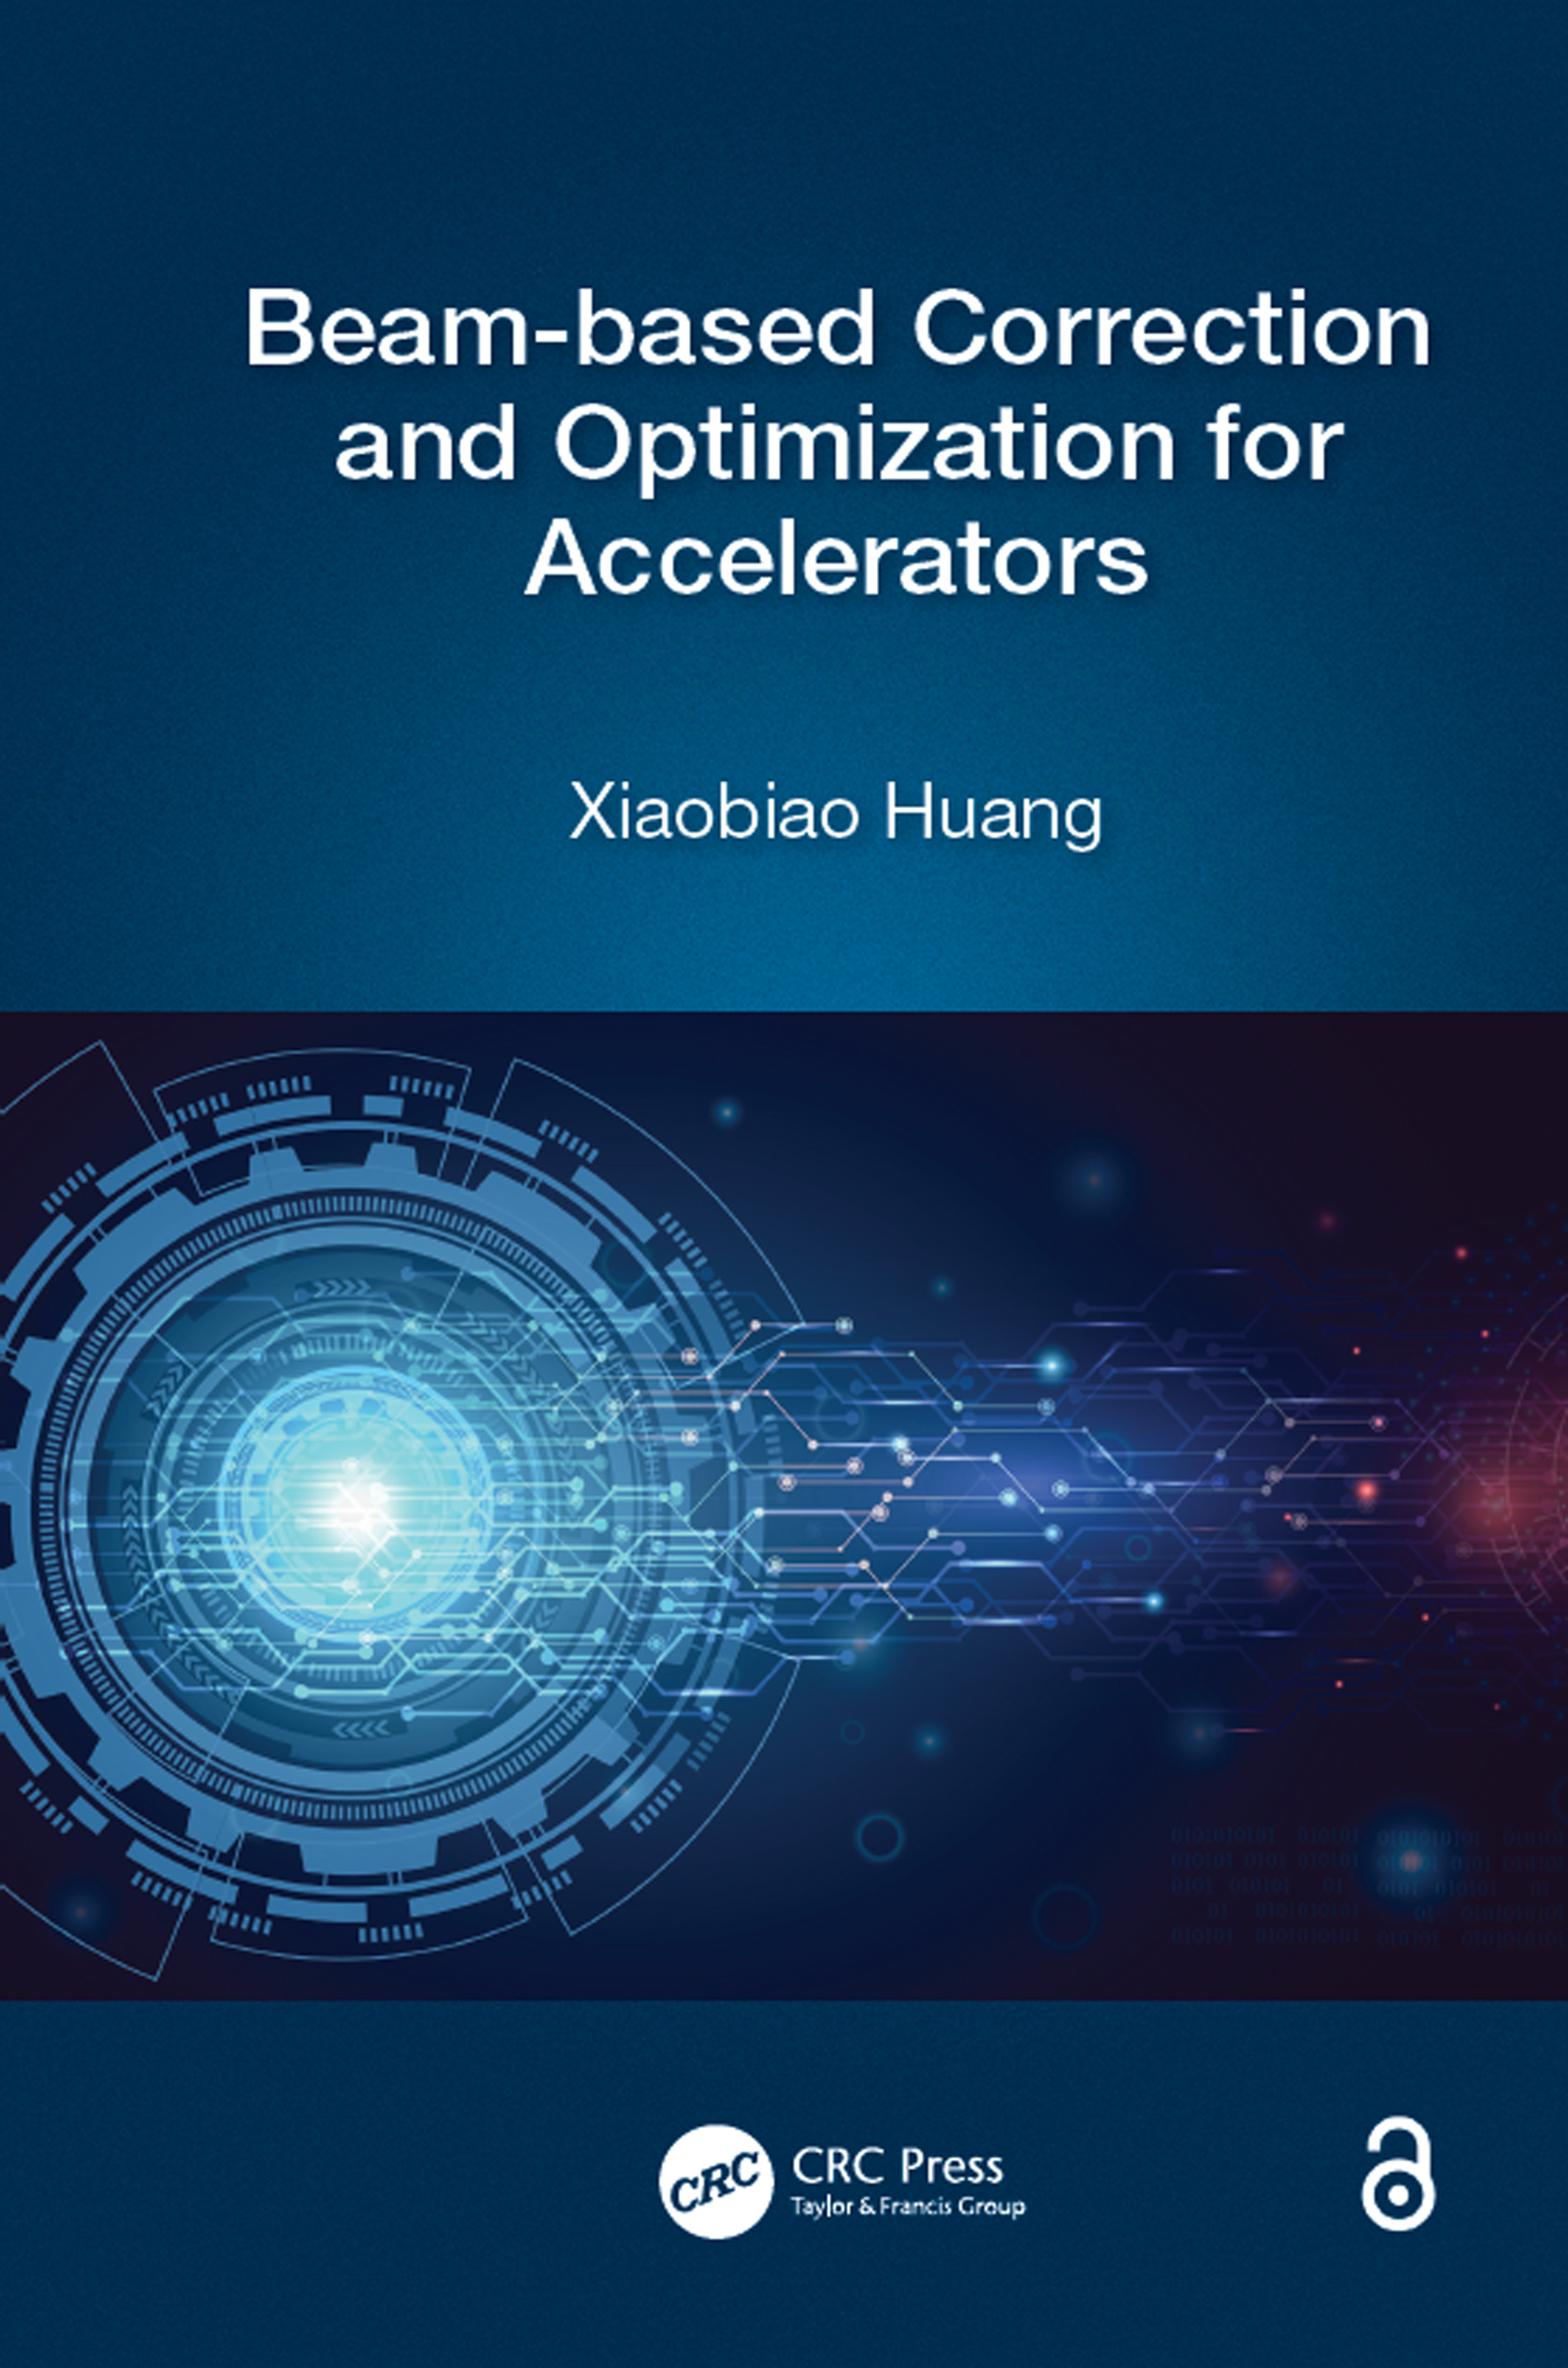 Beam-based Correction and Optimization for Accelerators